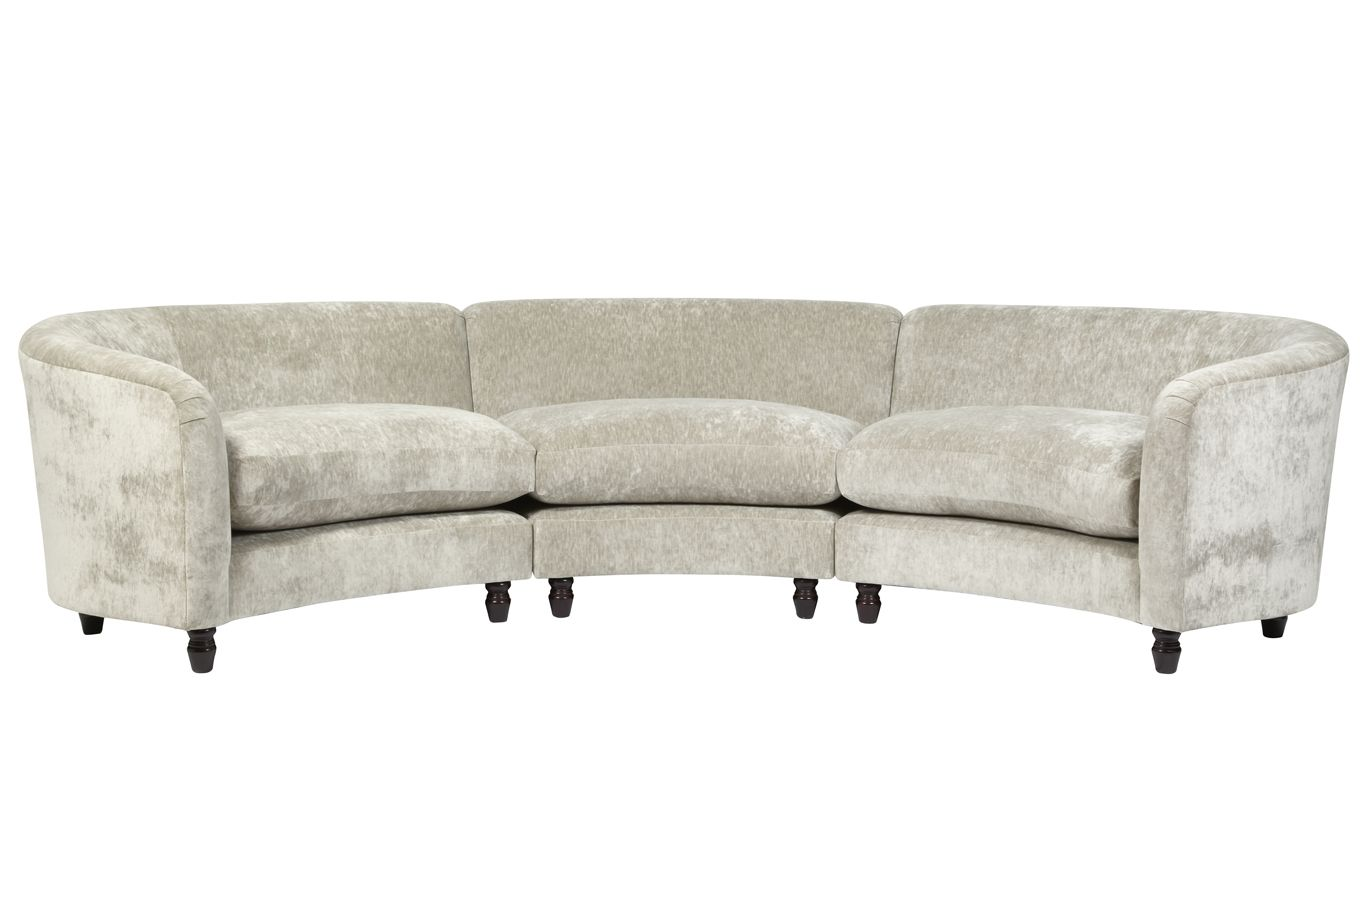 Sofas | Astoria Upholstered Large Curved Sofa   Laura Ashley Made